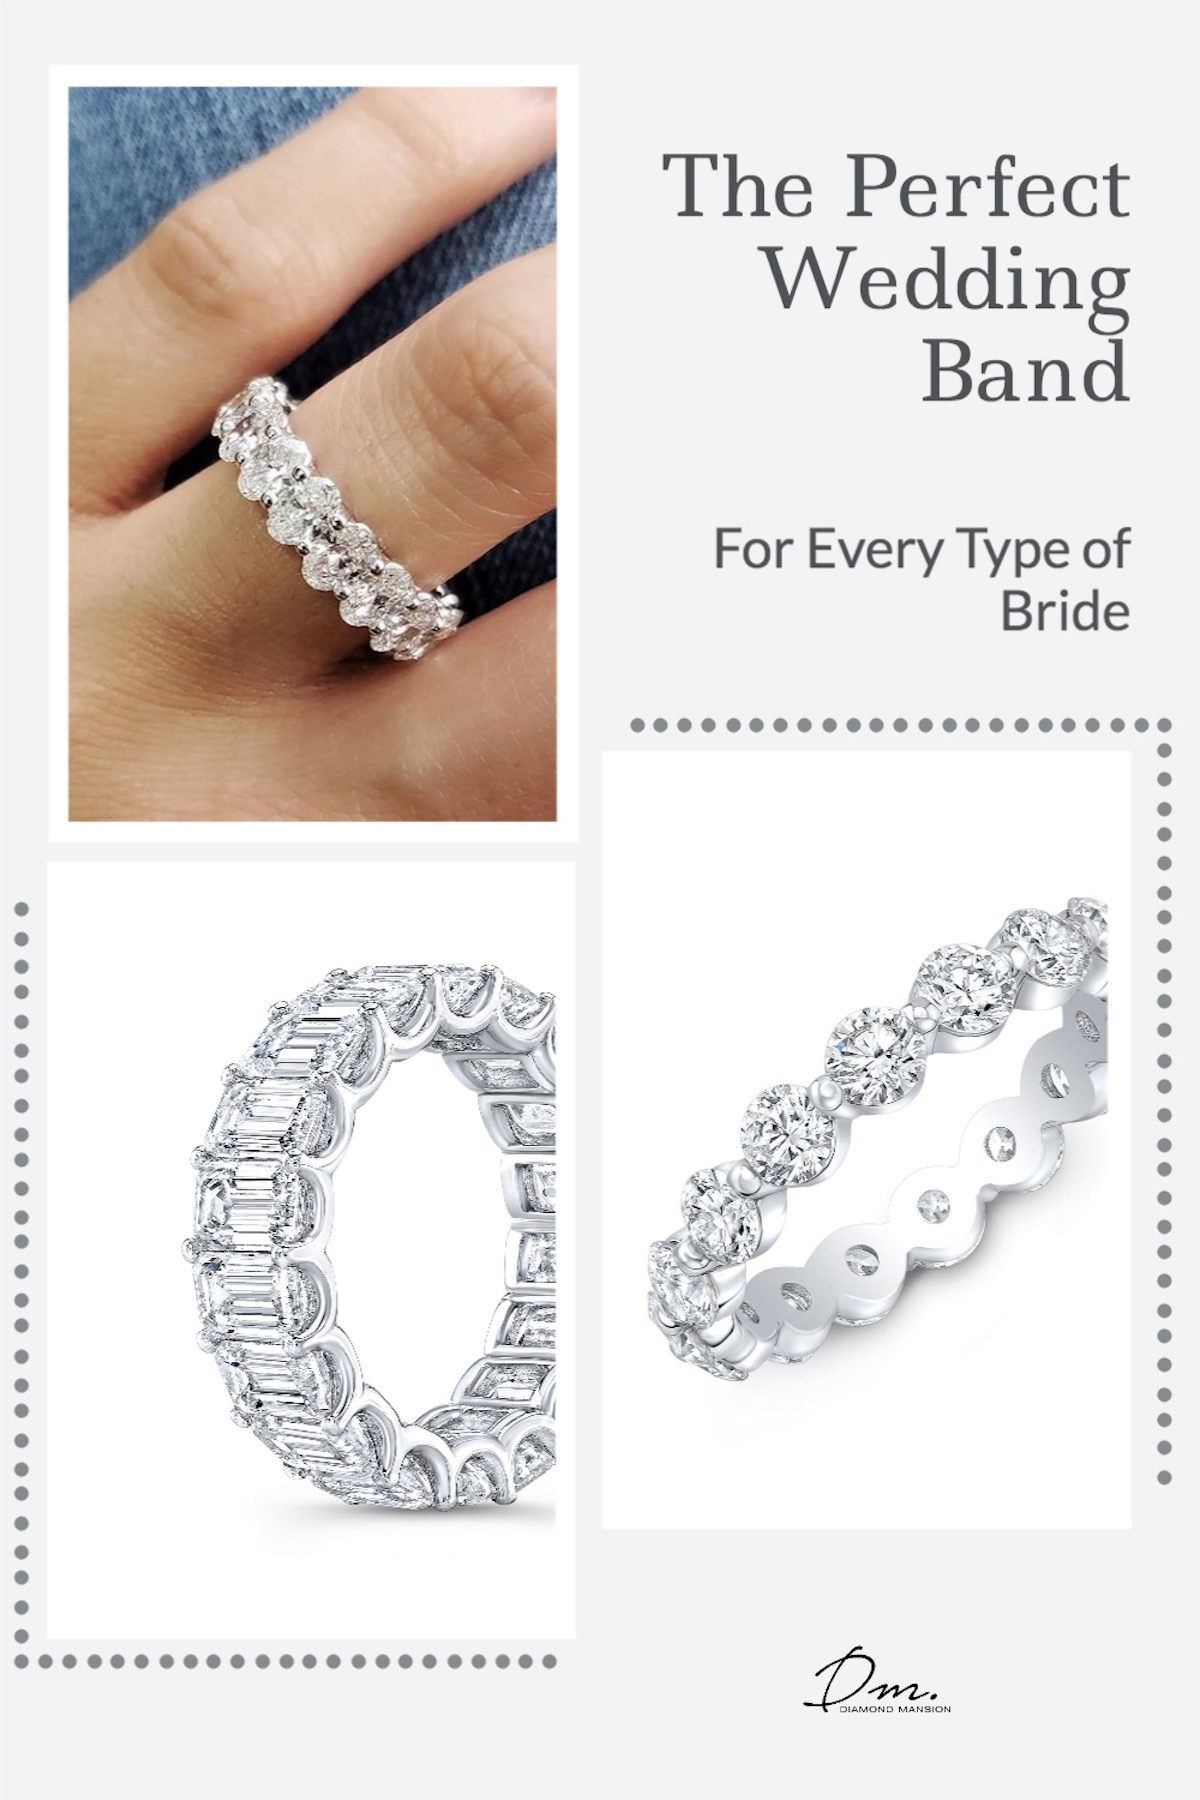 The Perfect Wedding Band by Diamond Mansion